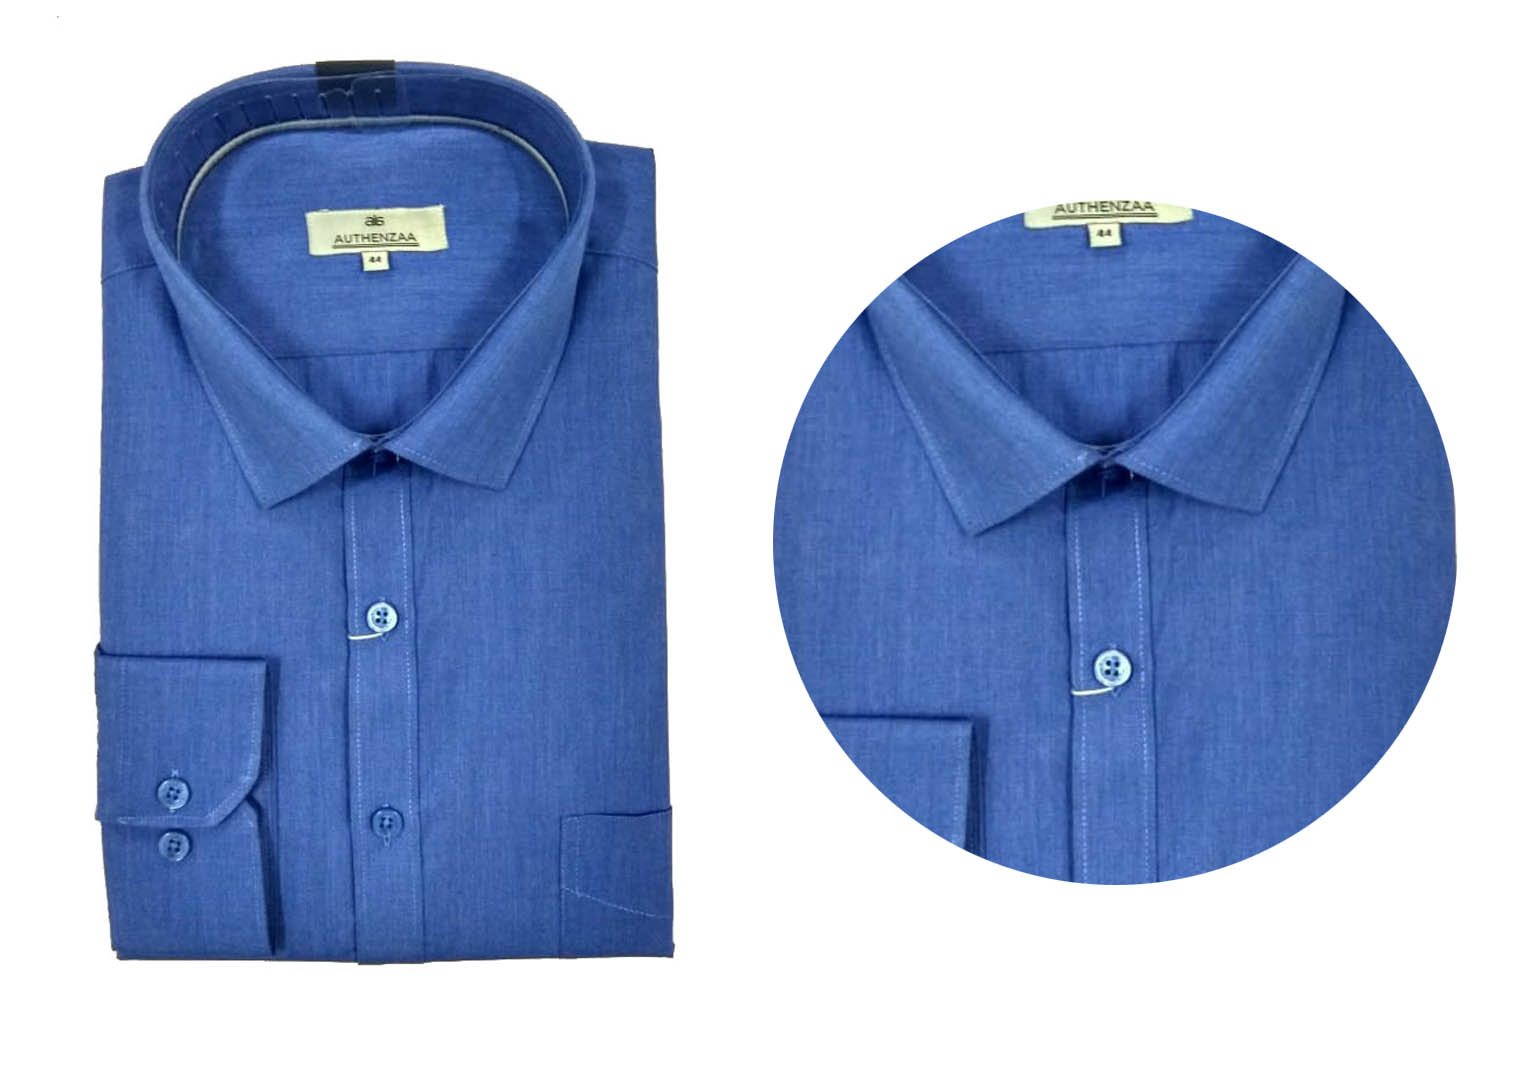 BT SEP 01 2019-DARK ROYAL BLUE MEN'S FORMAL SHIRT